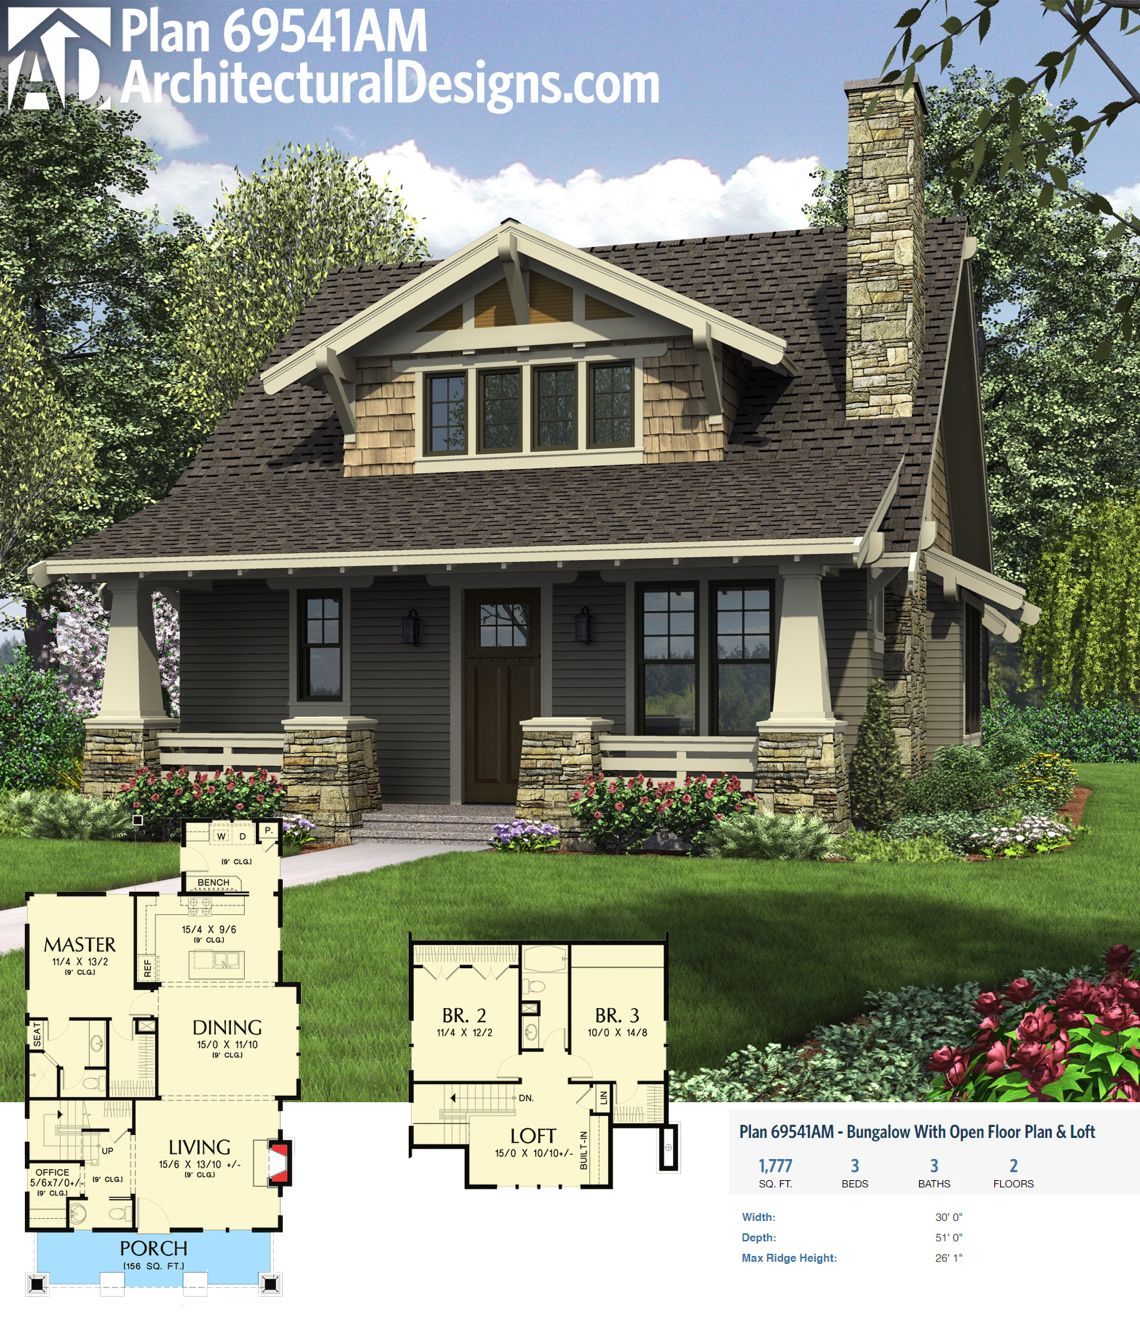 Plan 69541AM Bungalow With Open Floor Plan Loft Bungalow House